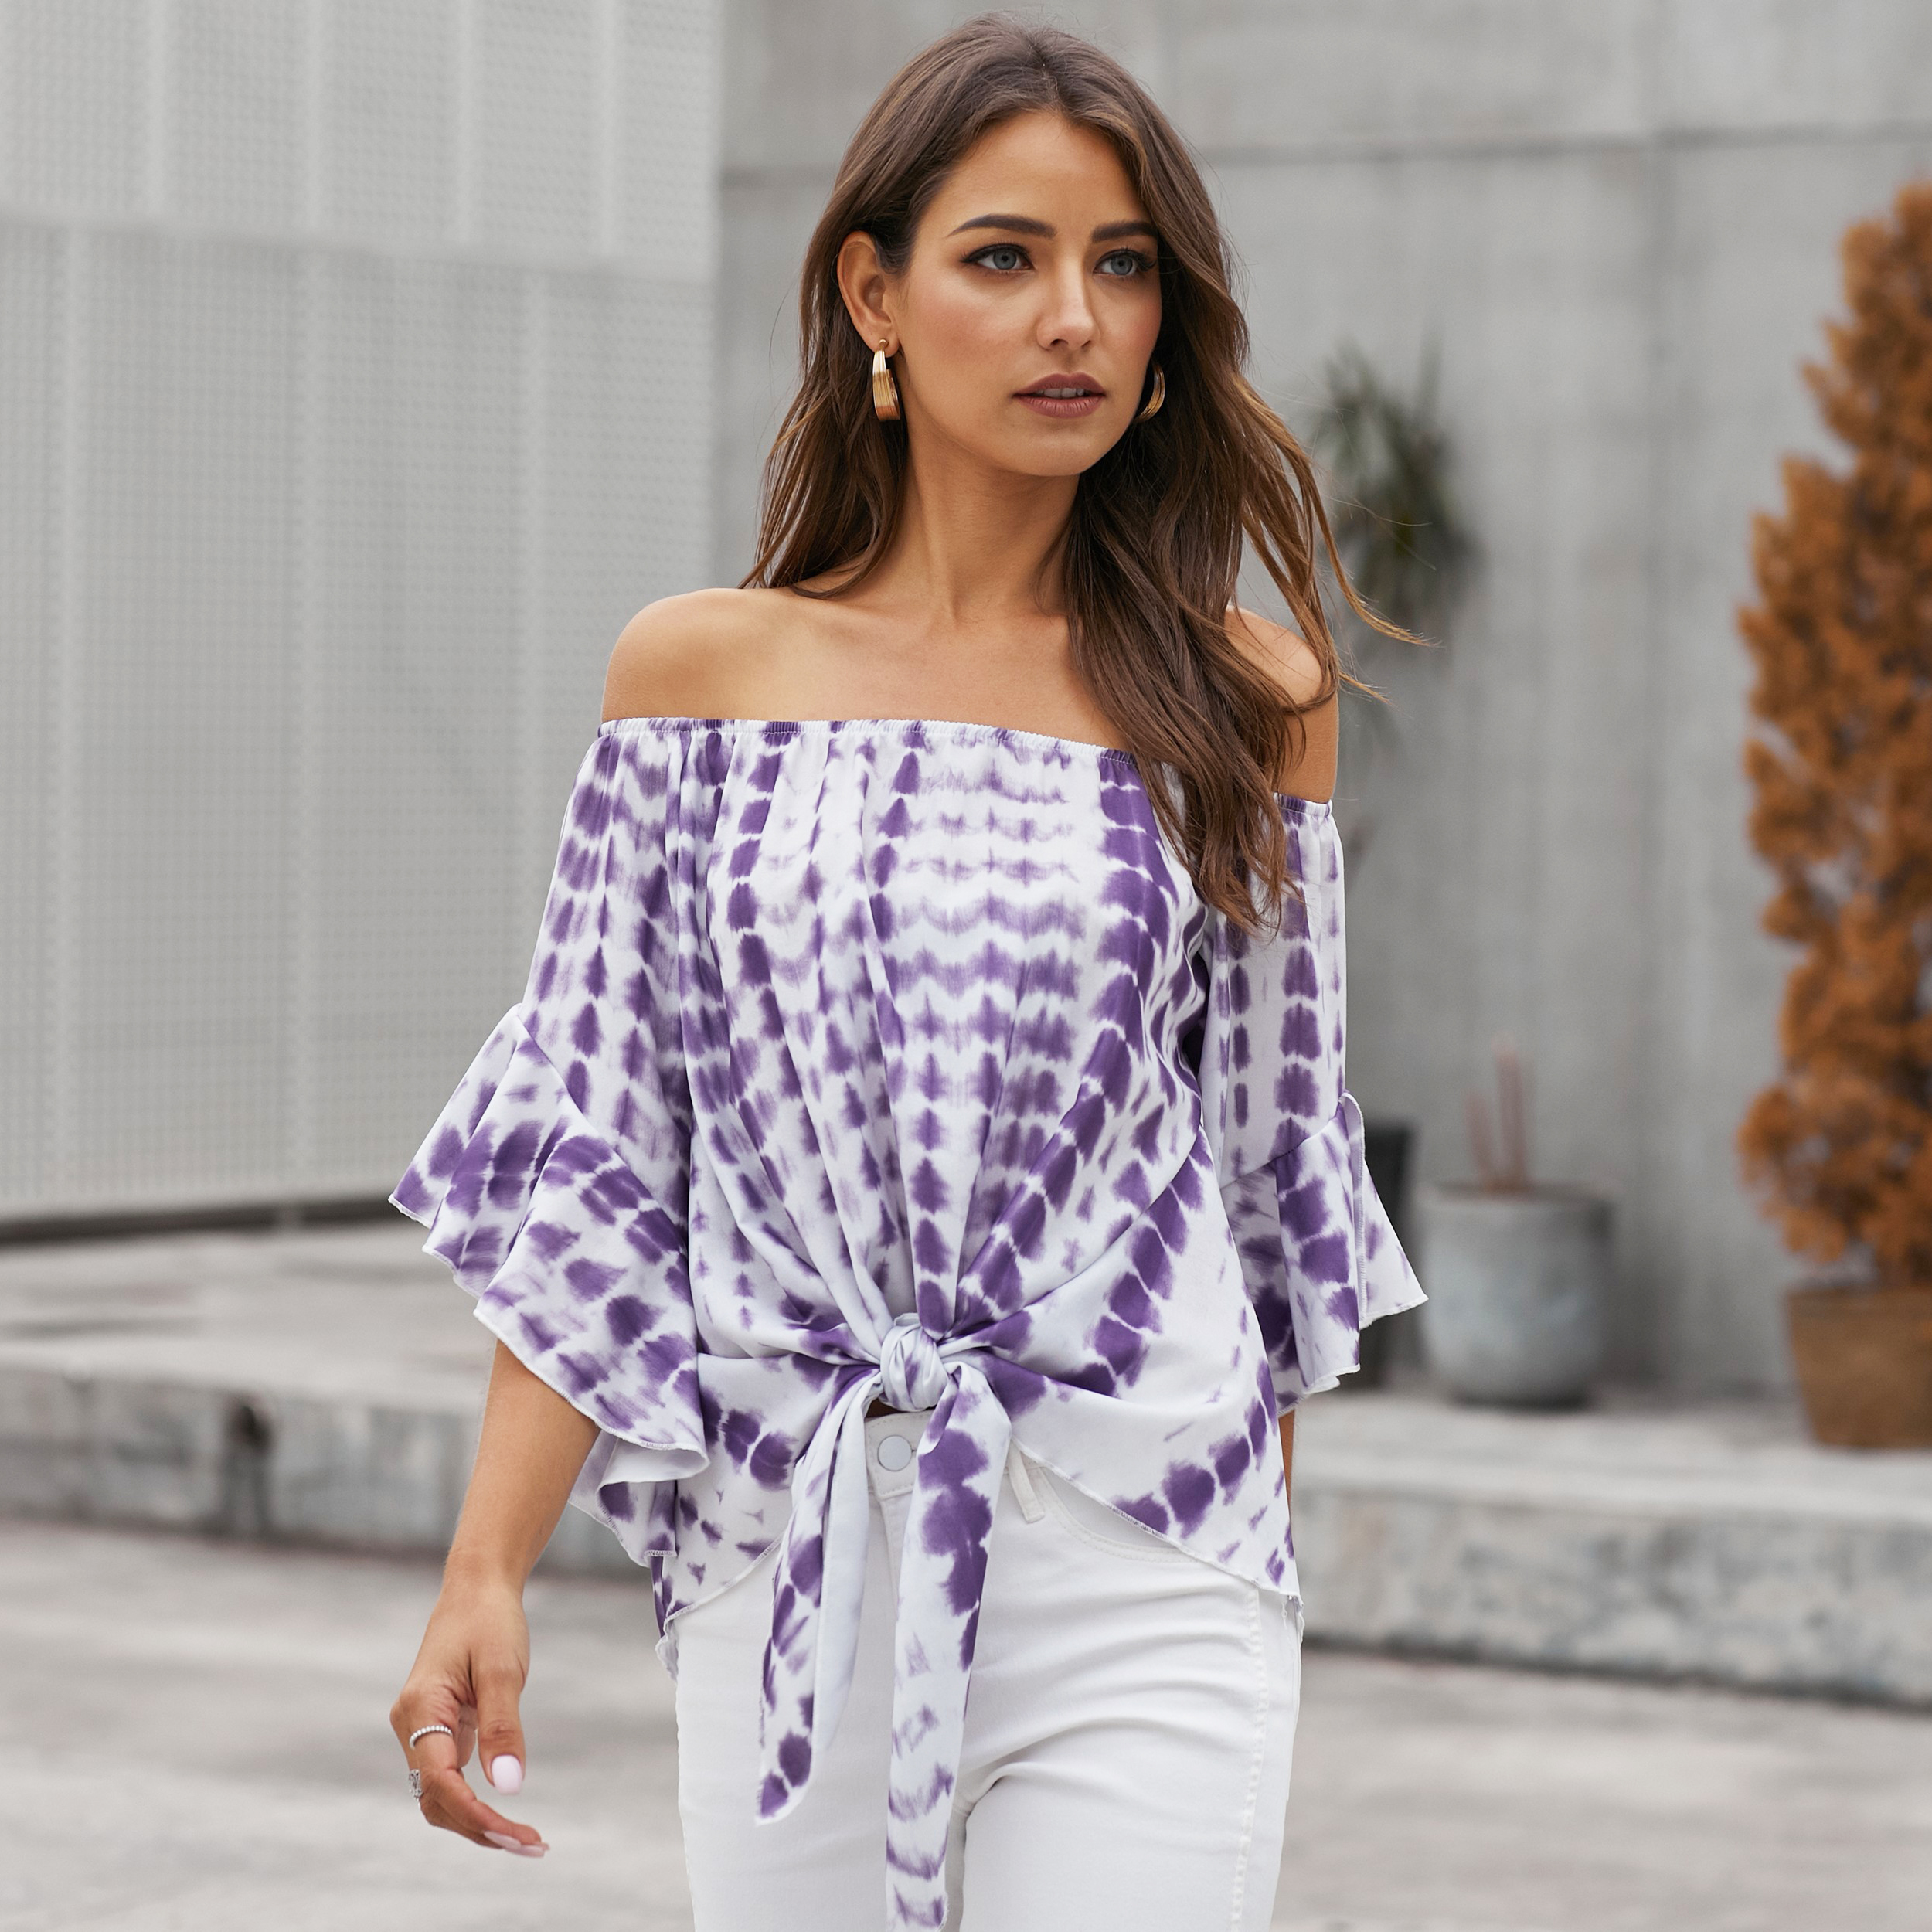 2020 New Arrive Womens Summer Casual Purple Chiffon Colorblock Tube Top Slap-Up Off-Shoulder Knotted Tops Girls Slash Neck Shirt